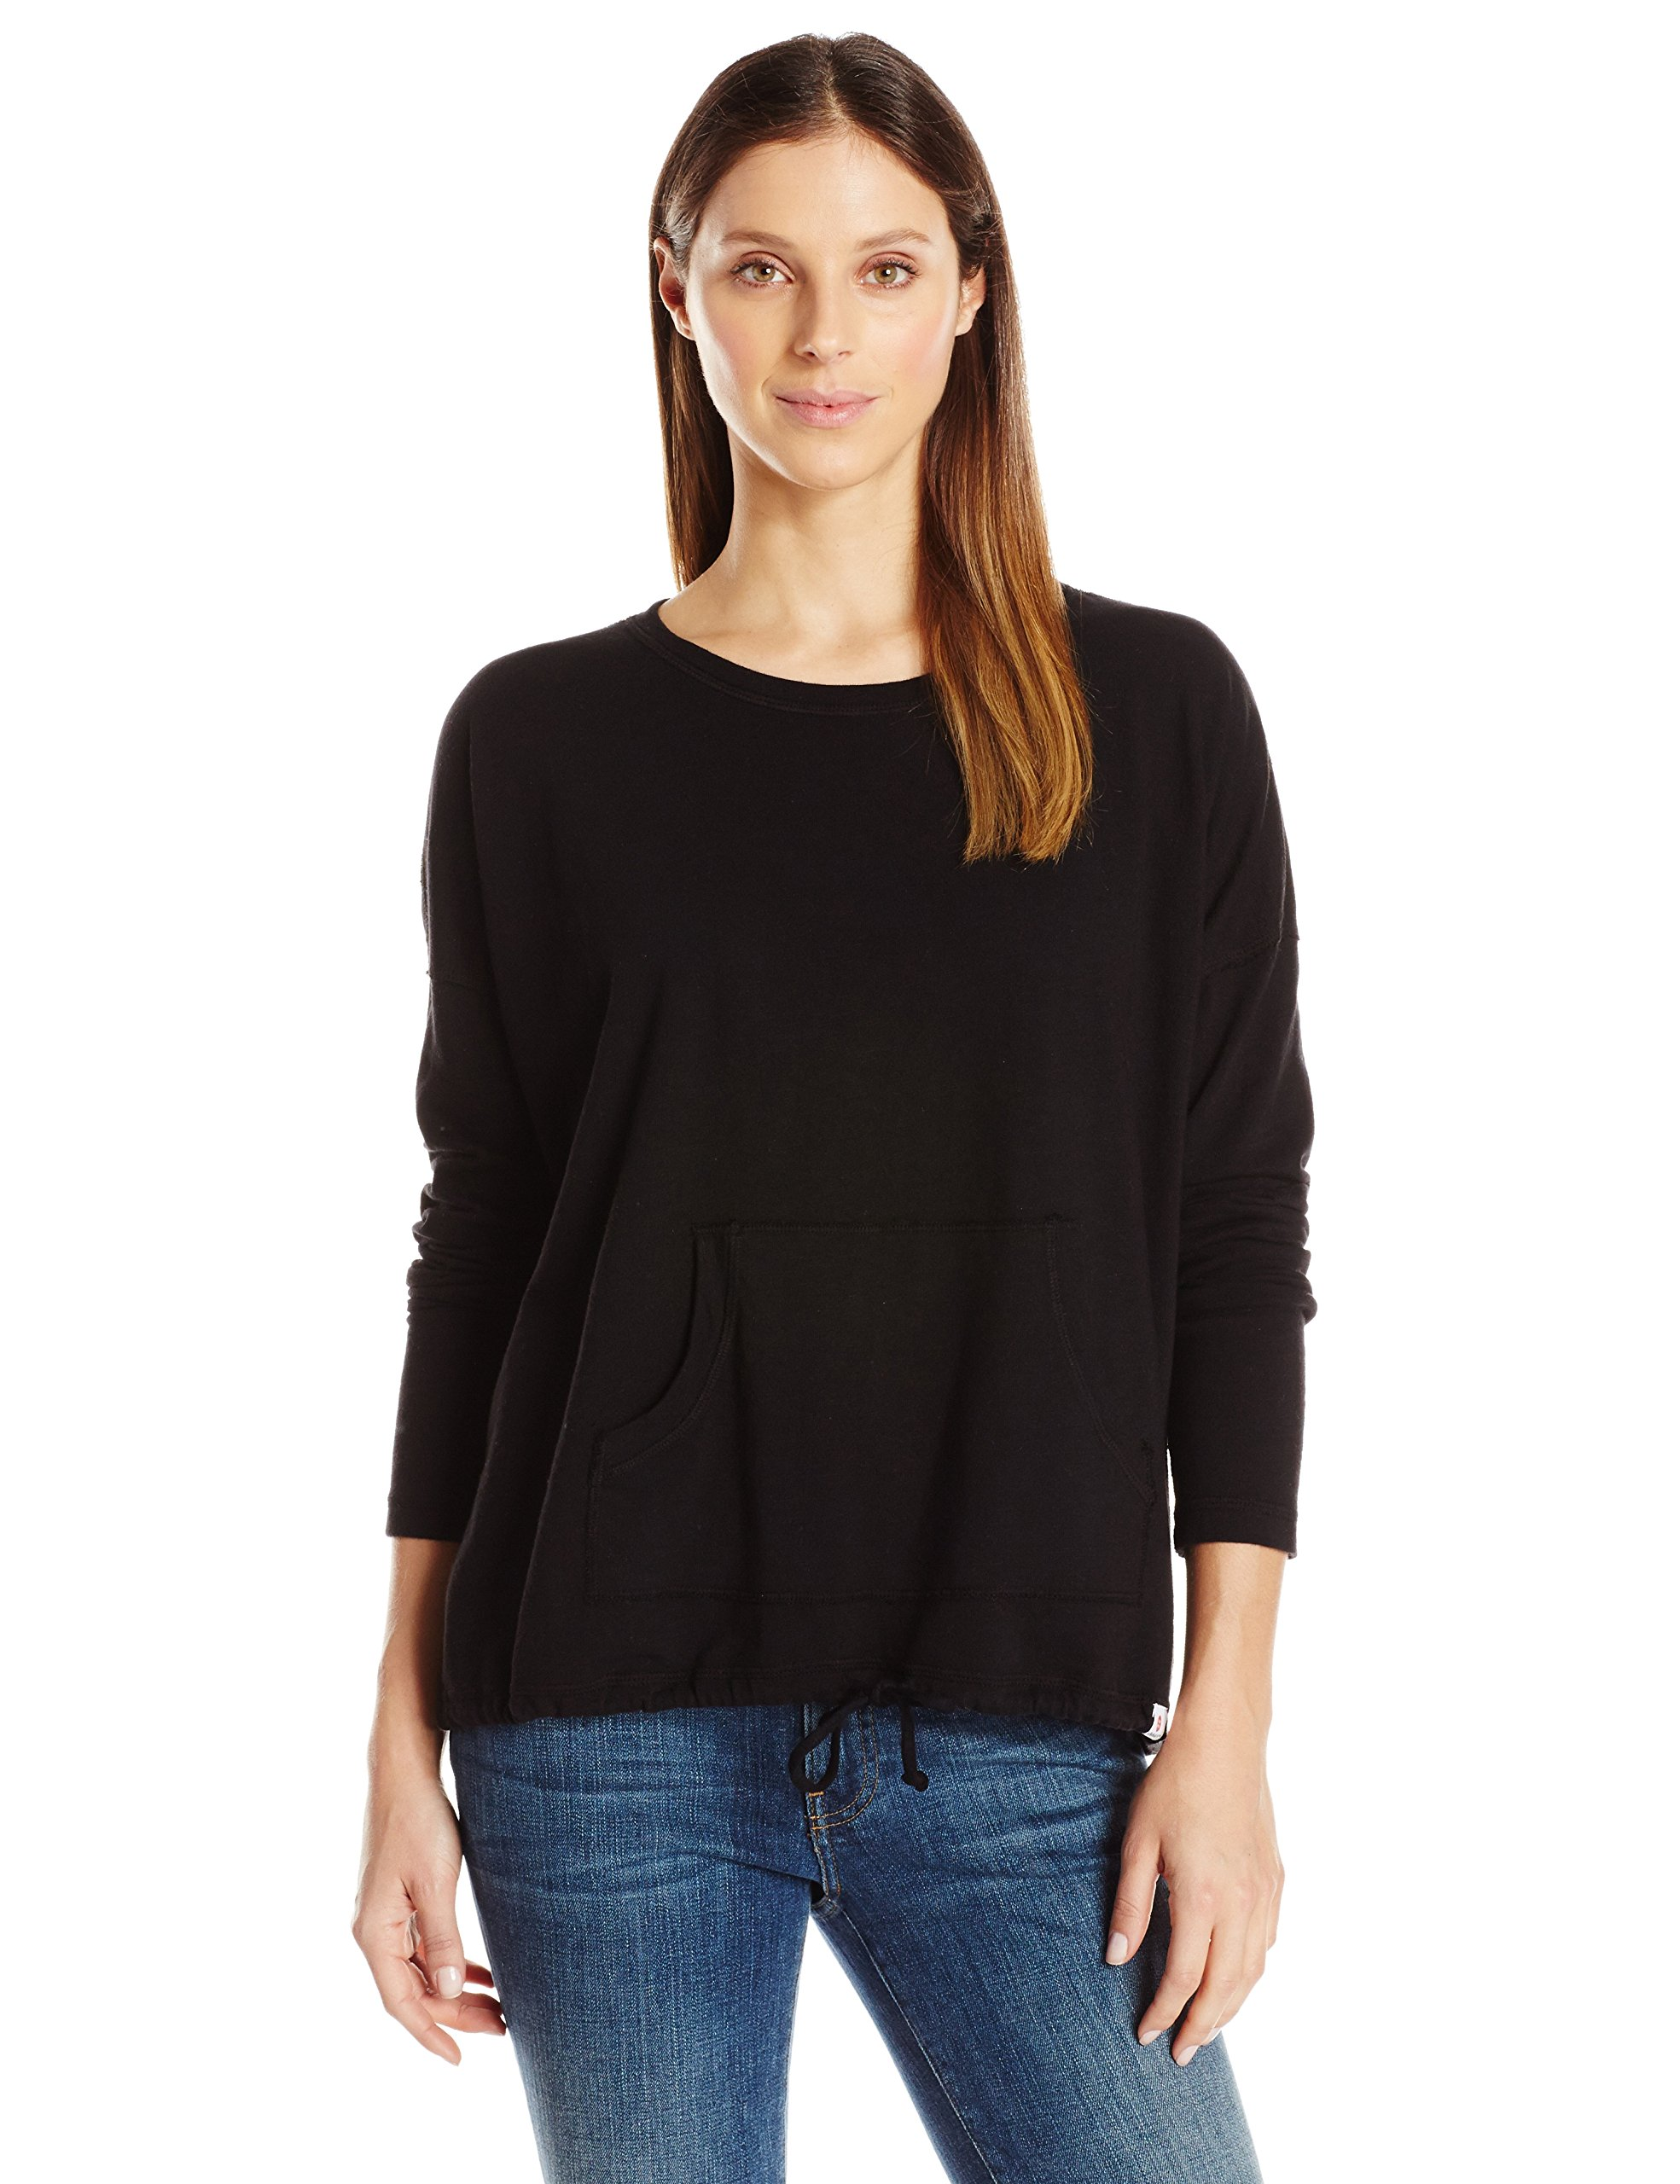 Vimmia Women's Cotton Pullover, Black, XS